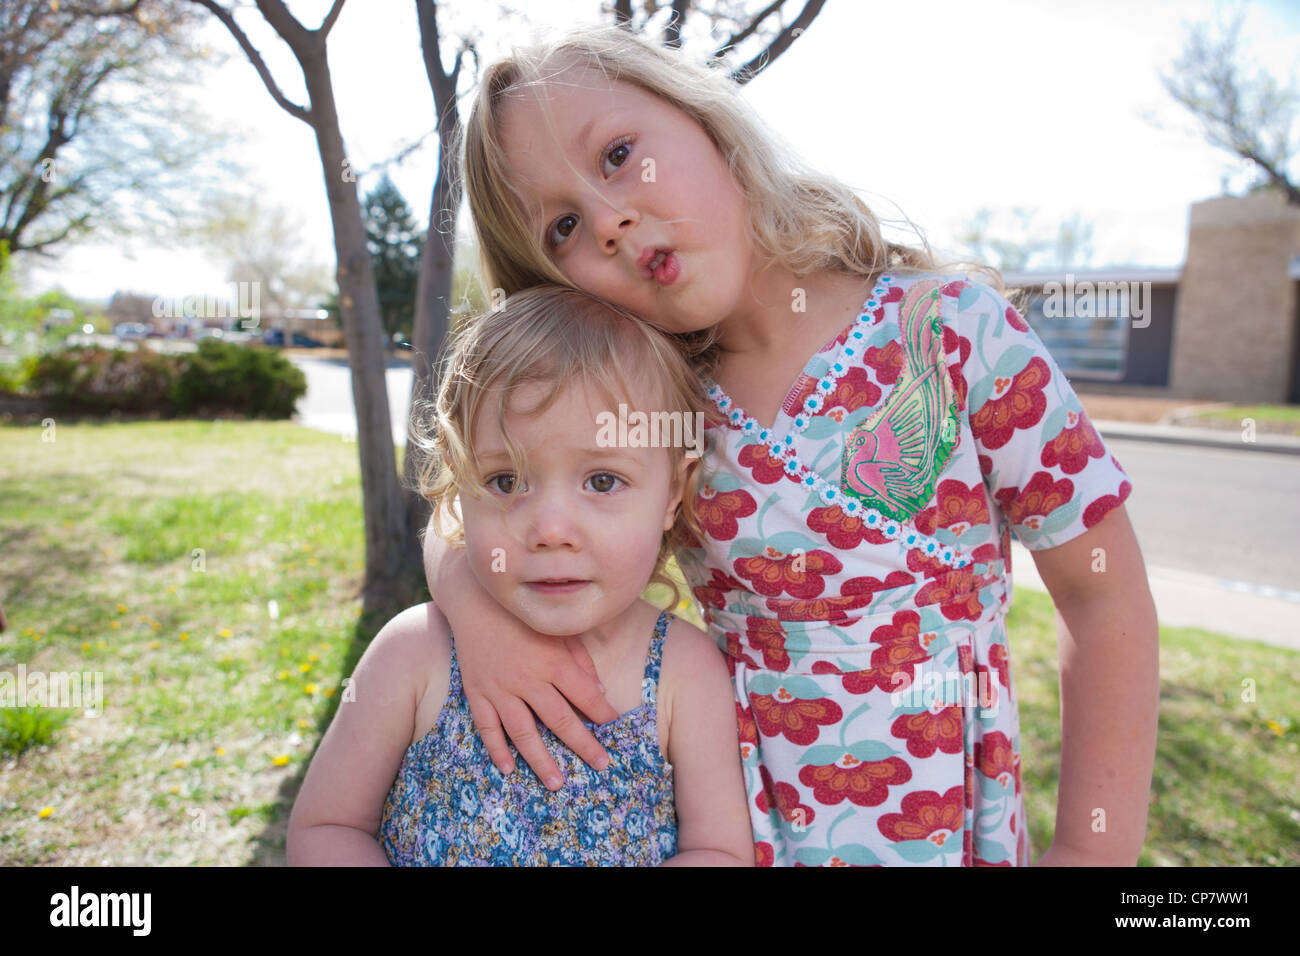 Sisters. age two and four, making silly faces hugging each other outdoors. - Stock Image